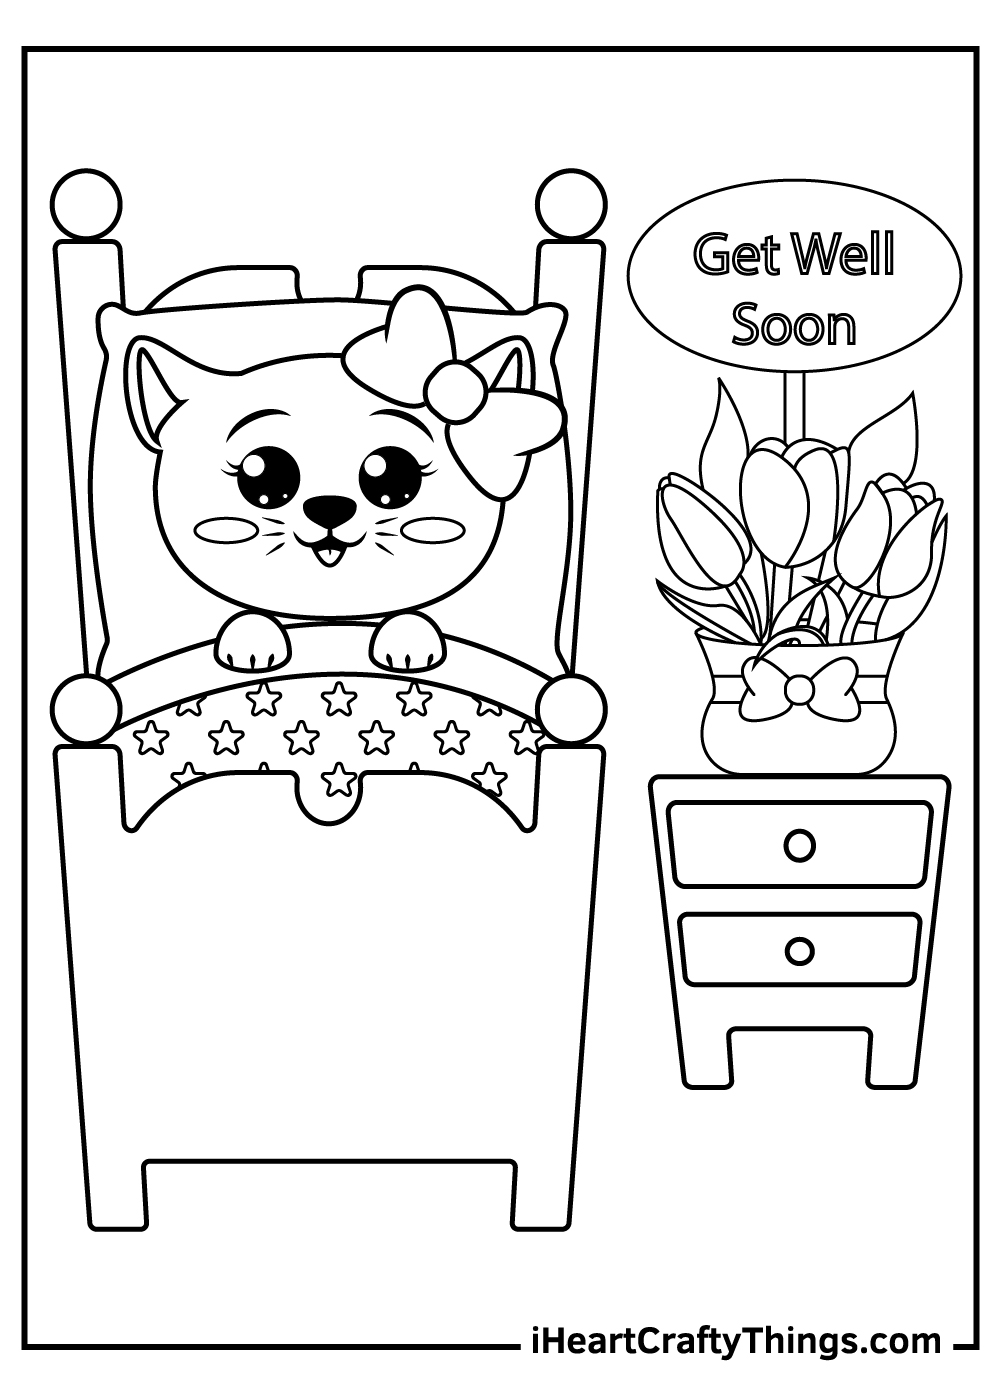 get well soon sister coloring pages free download